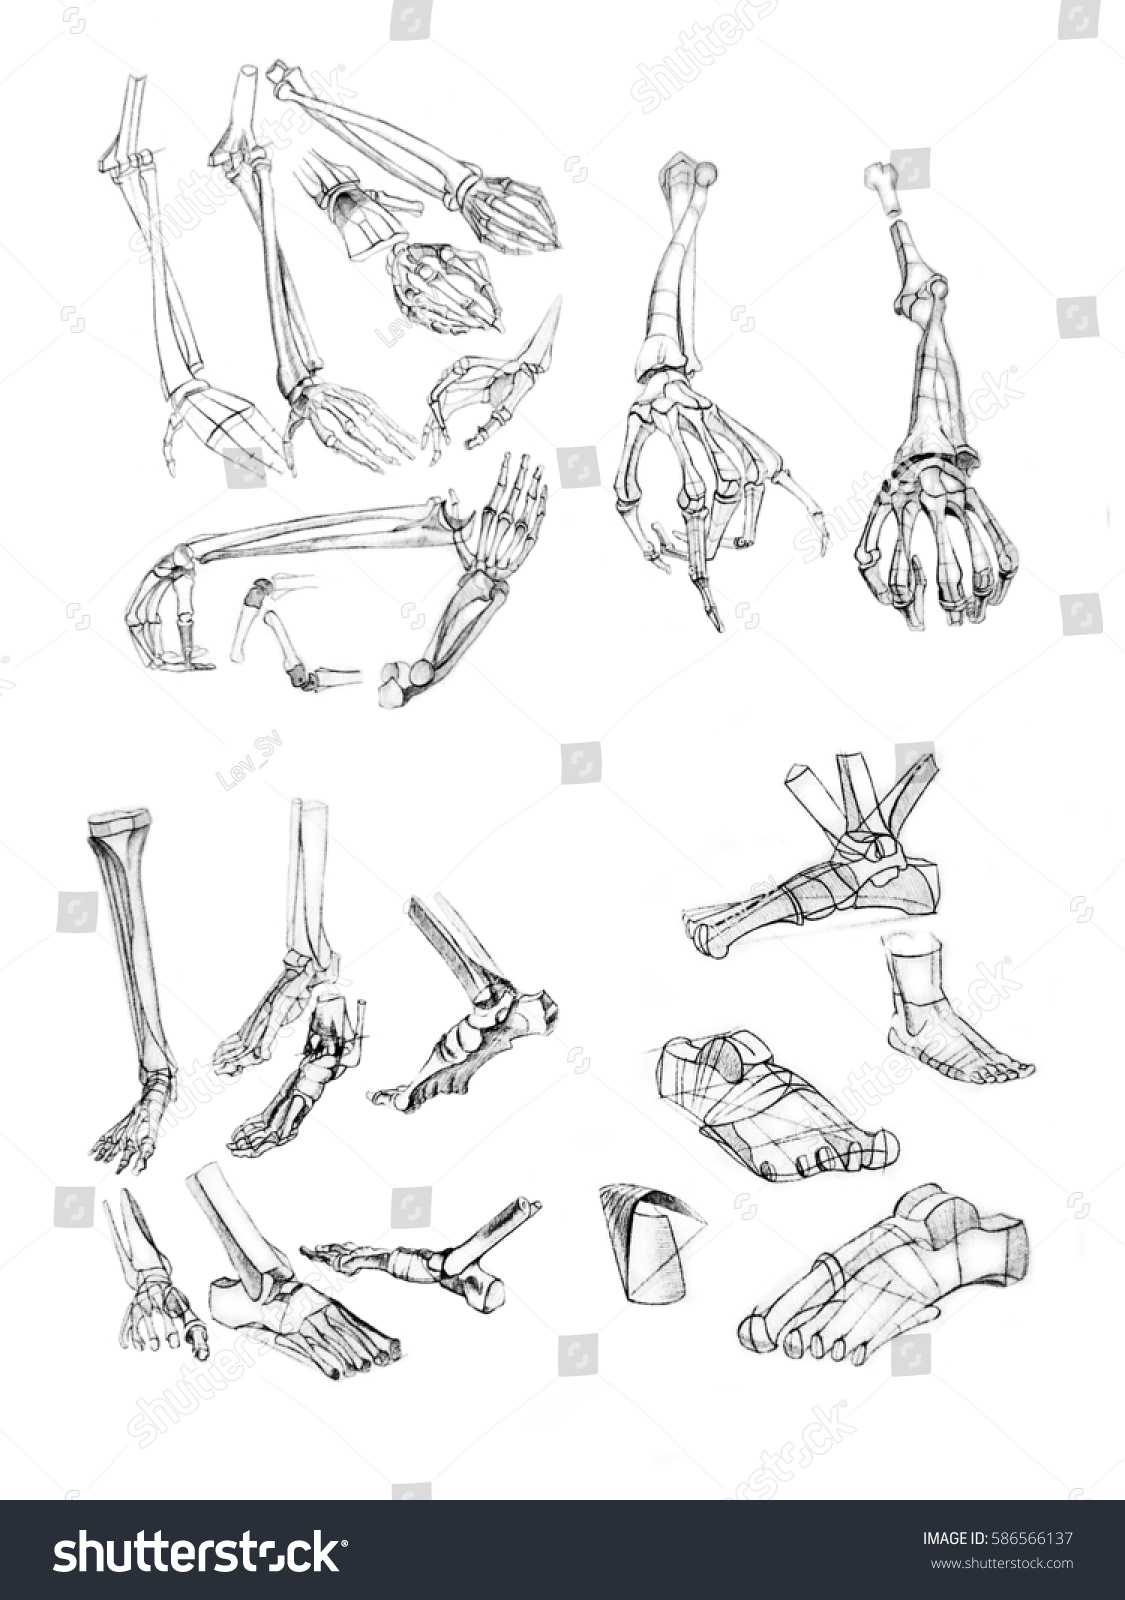 Sketch Human Hand Anatomy Pencil Stock Illustration 586566137 ...